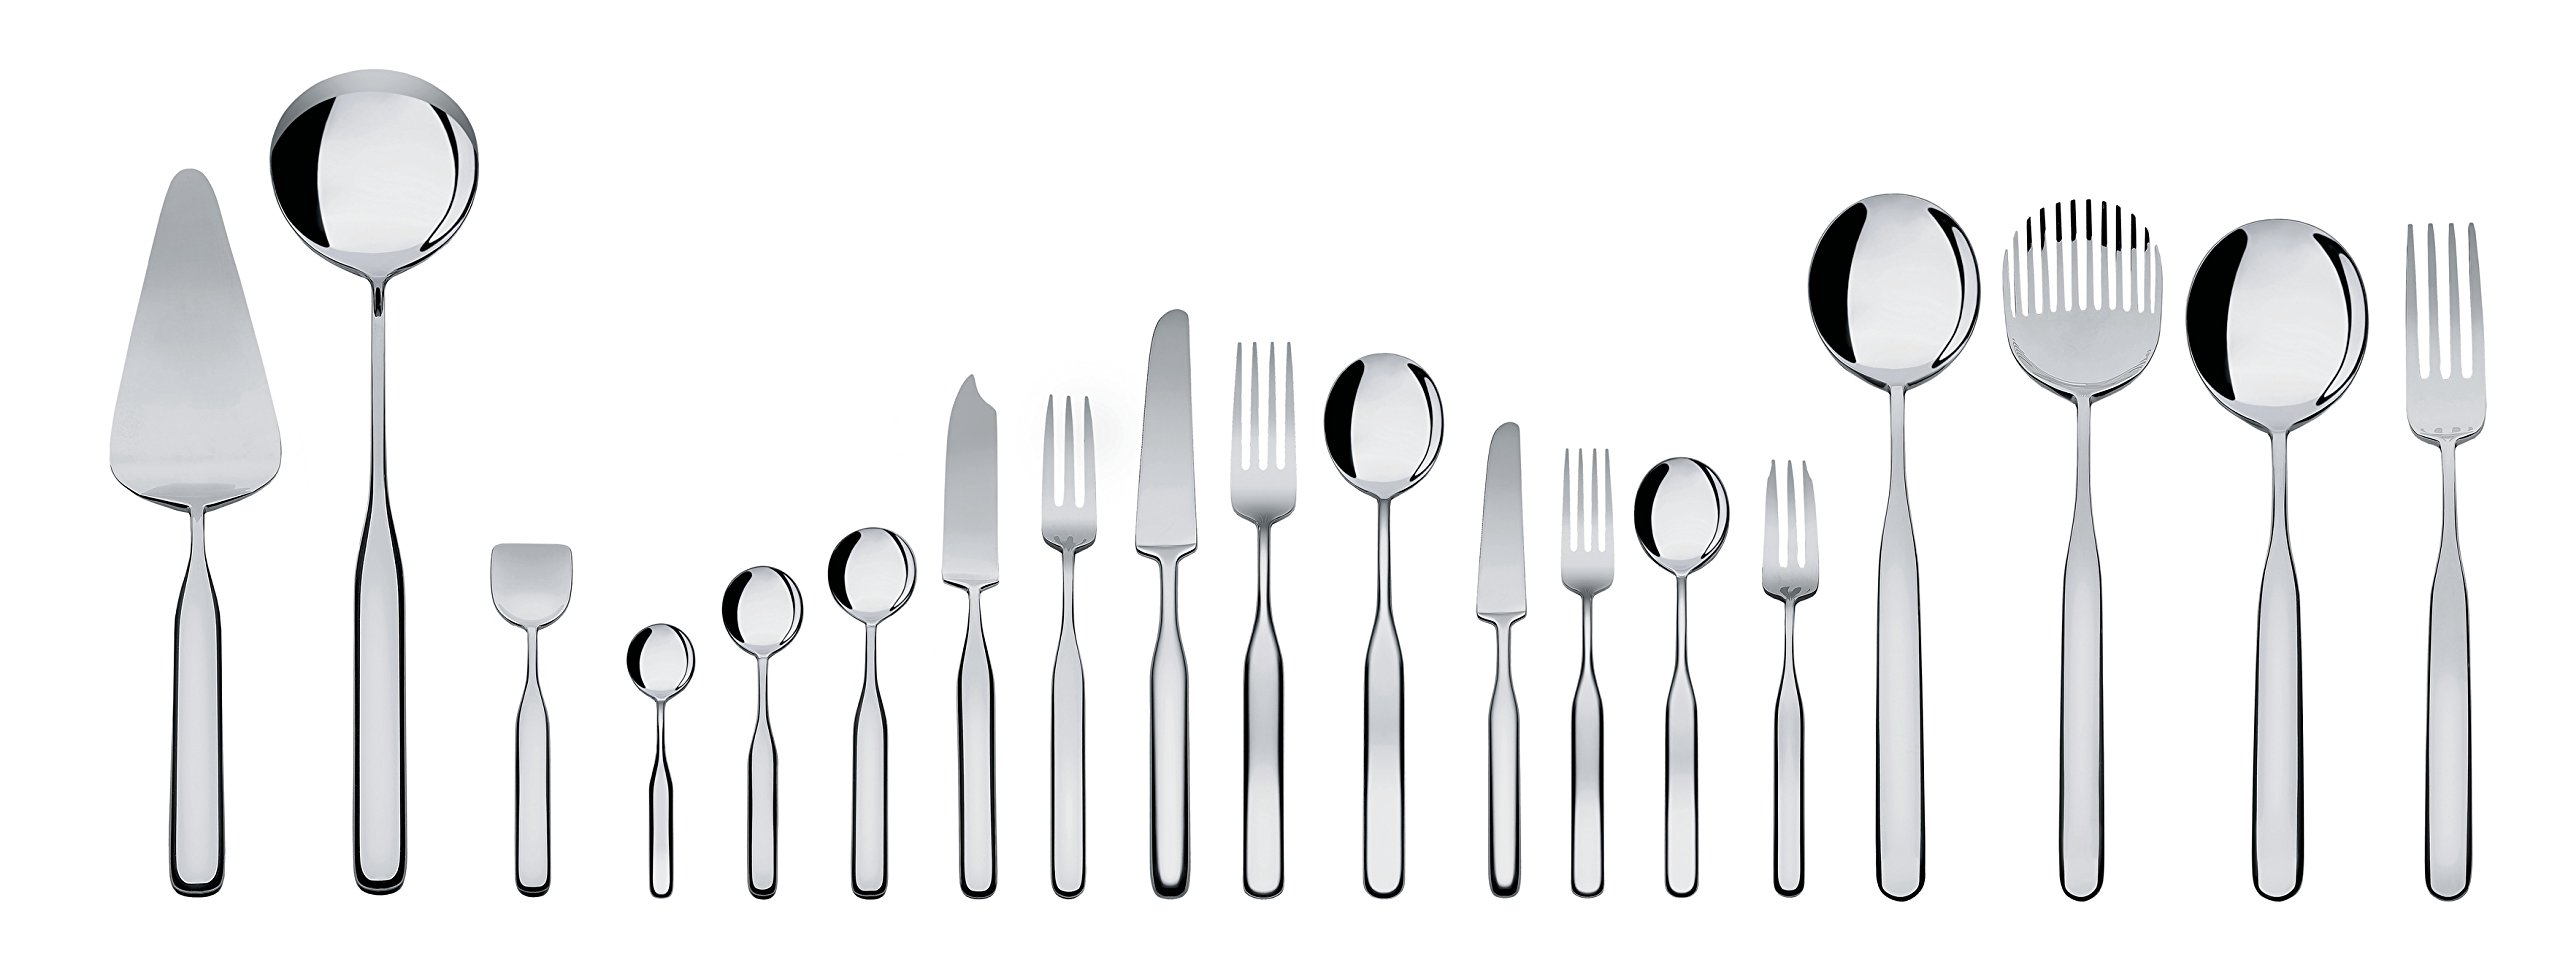 Alessi ''Collo-alto'' Table Knives in Steel Aisi 420 Mirror Polished (Set of 6), Silver by Alessi (Image #3)